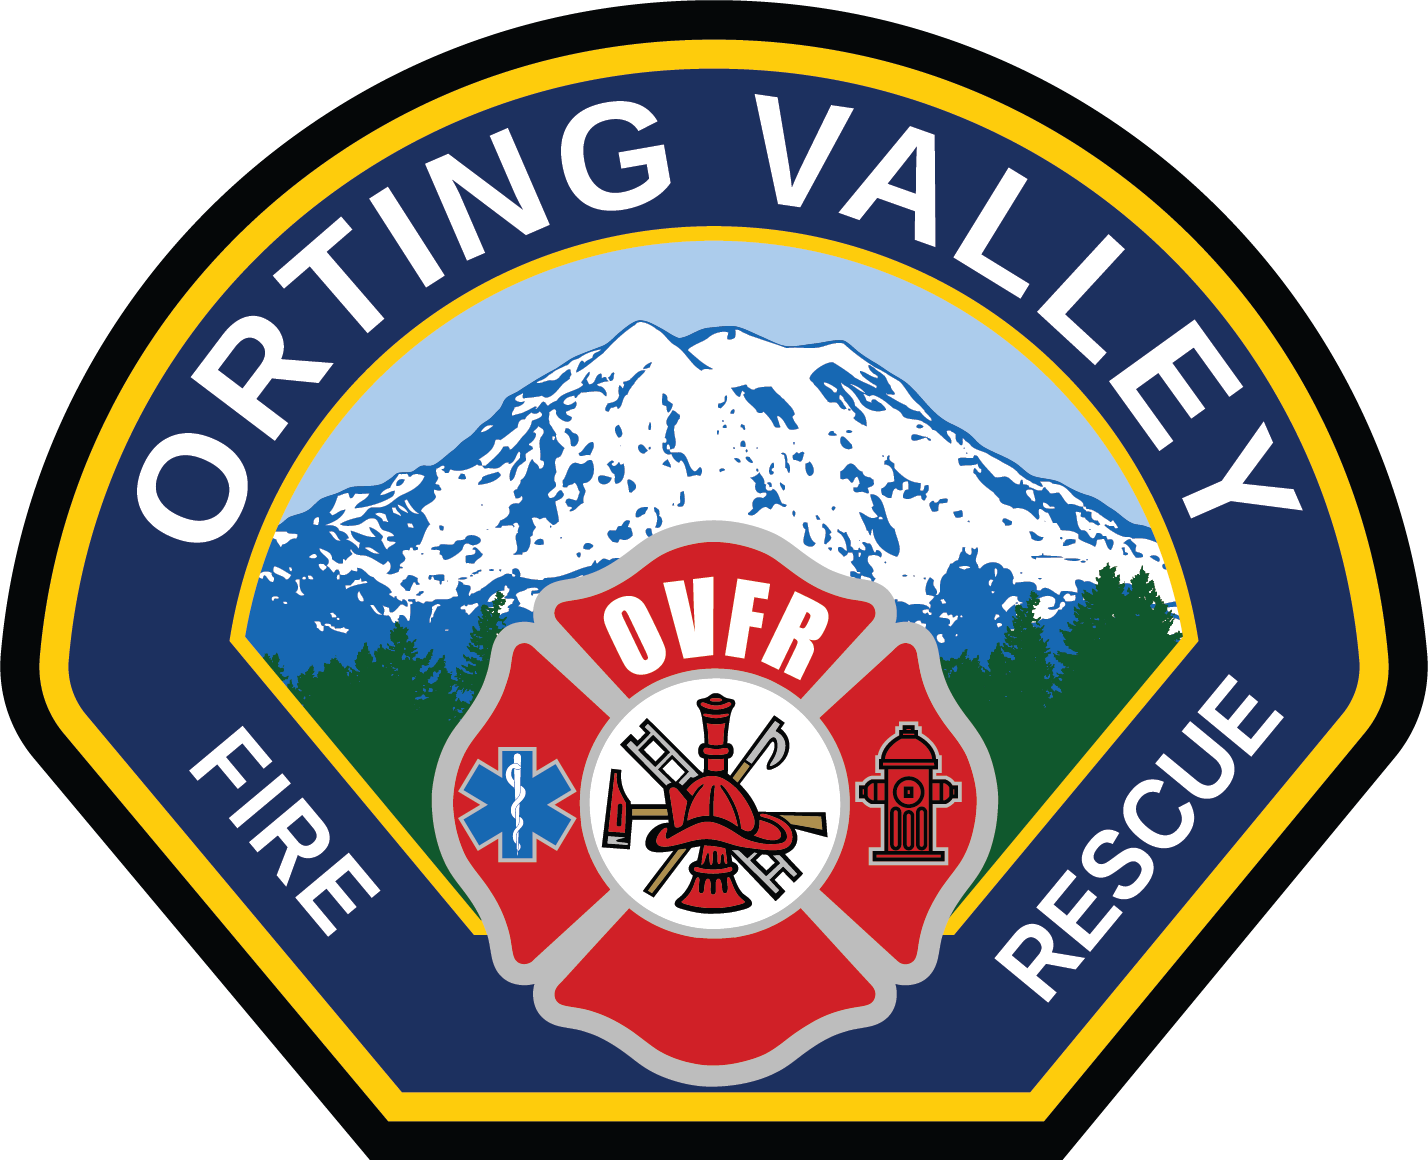 Orting valley rescue . Fire clipart badge